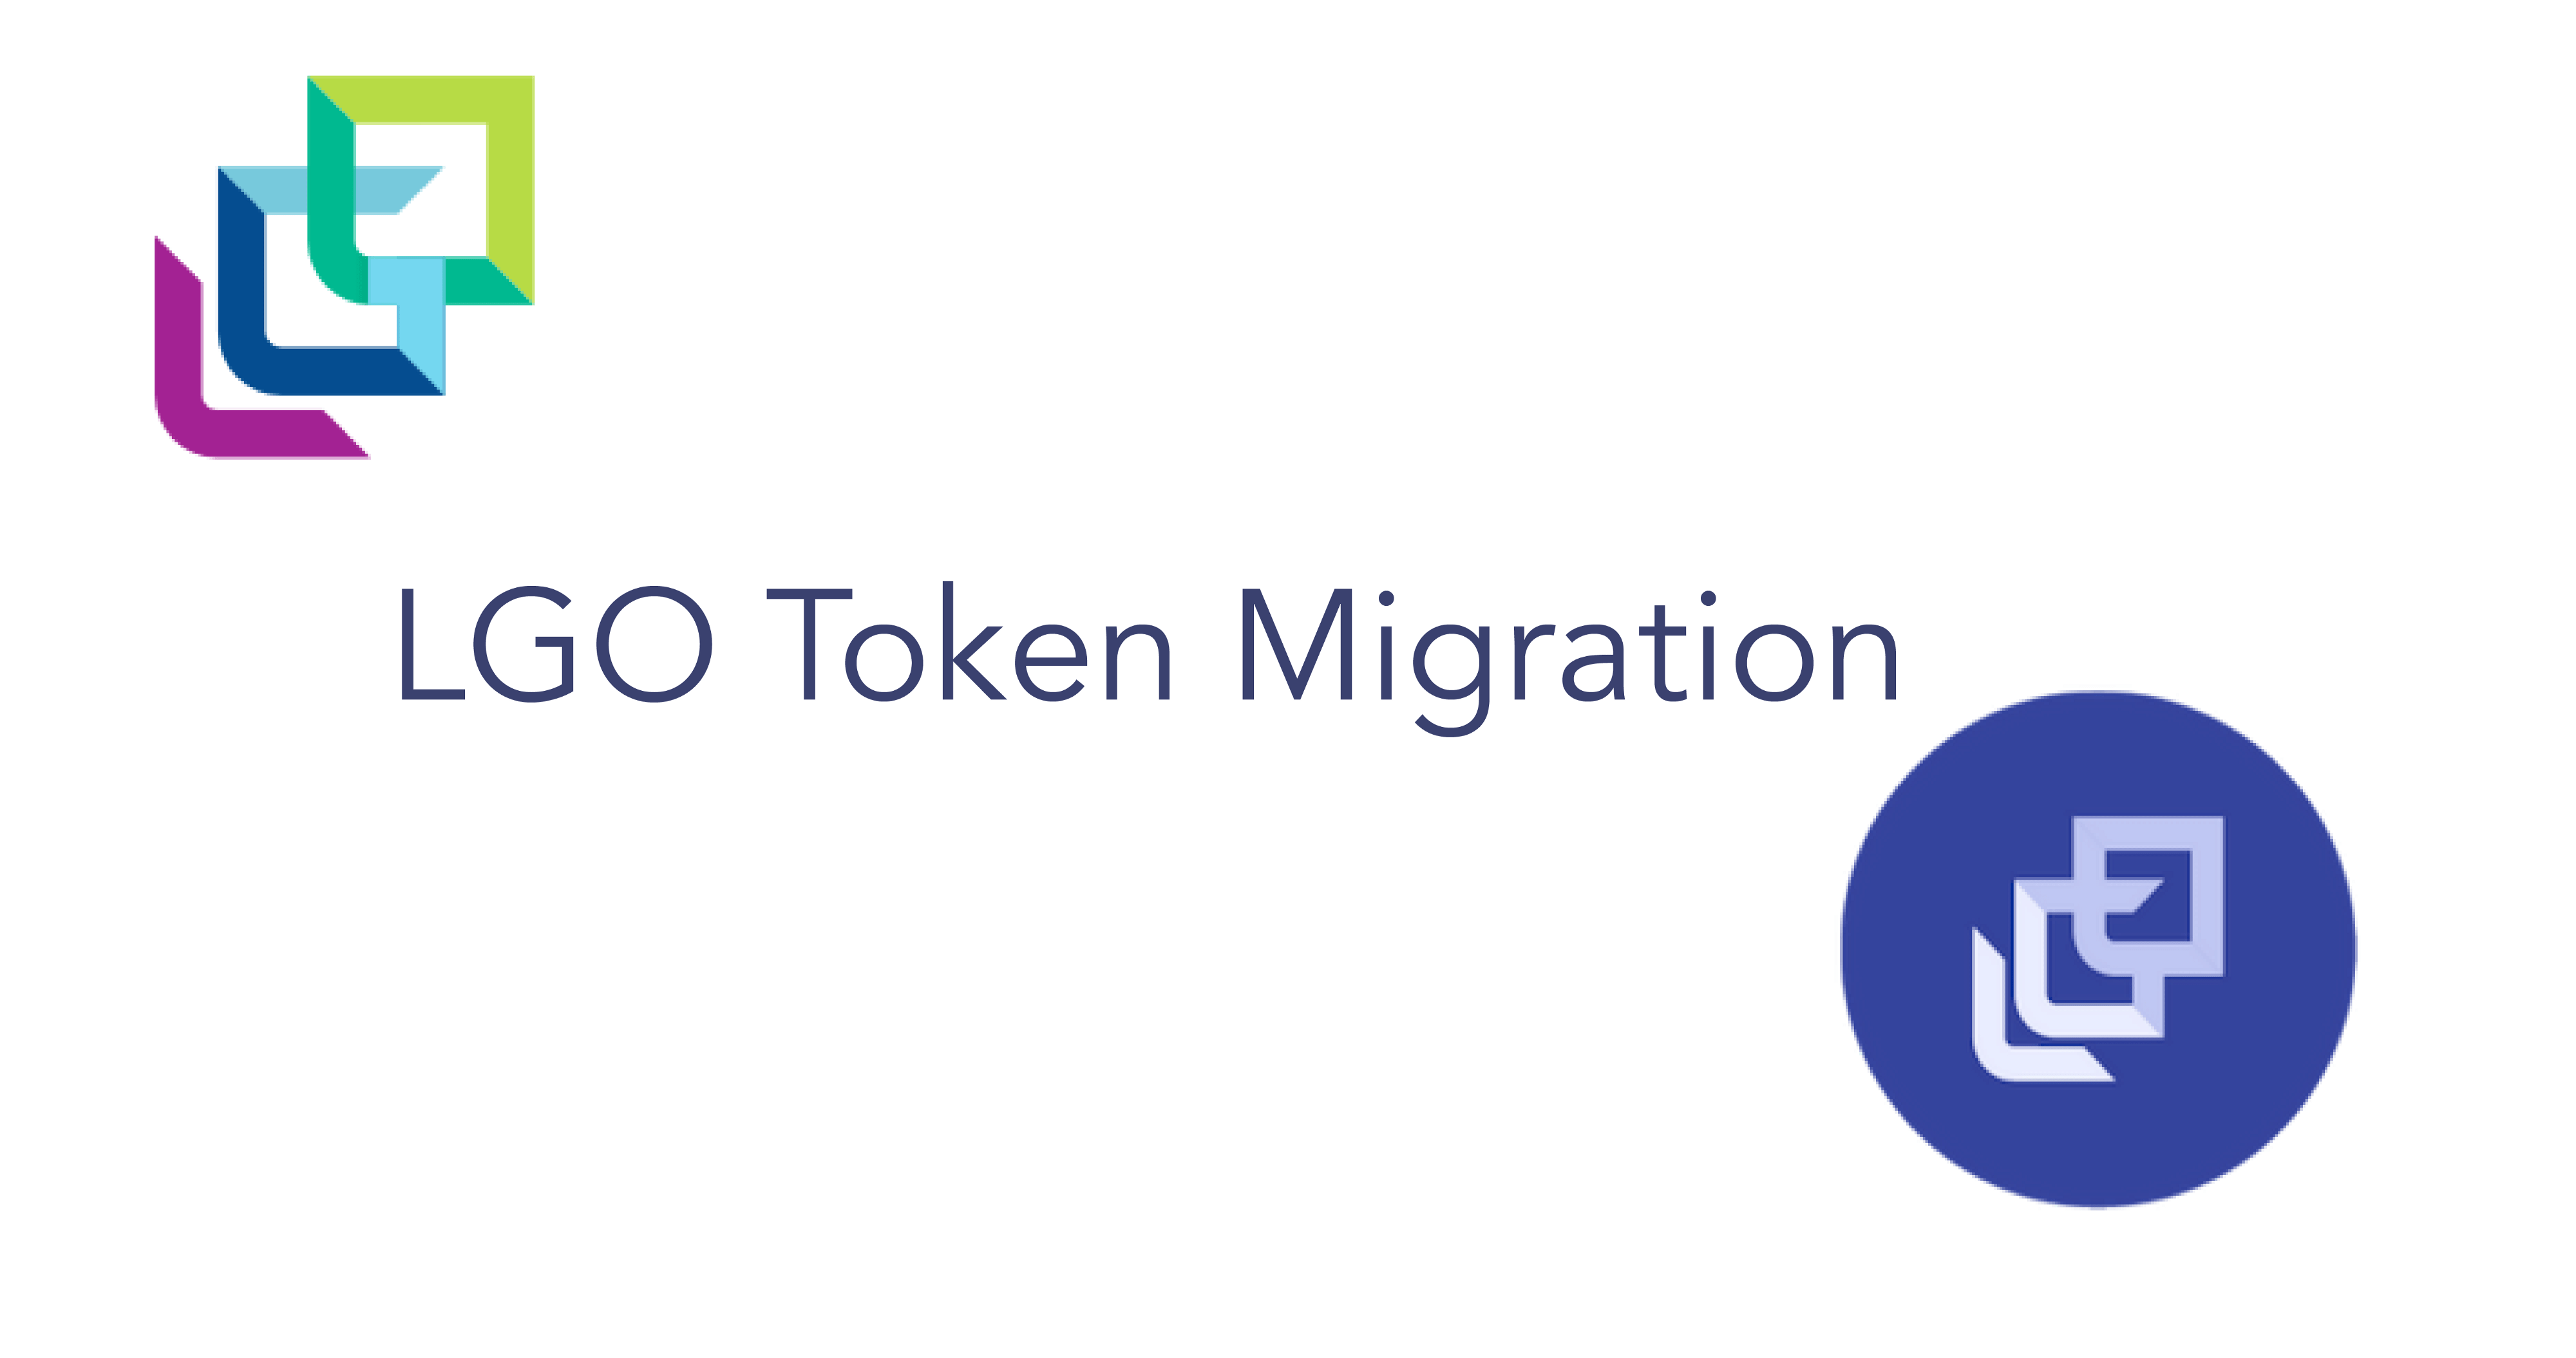 lgo token migration event